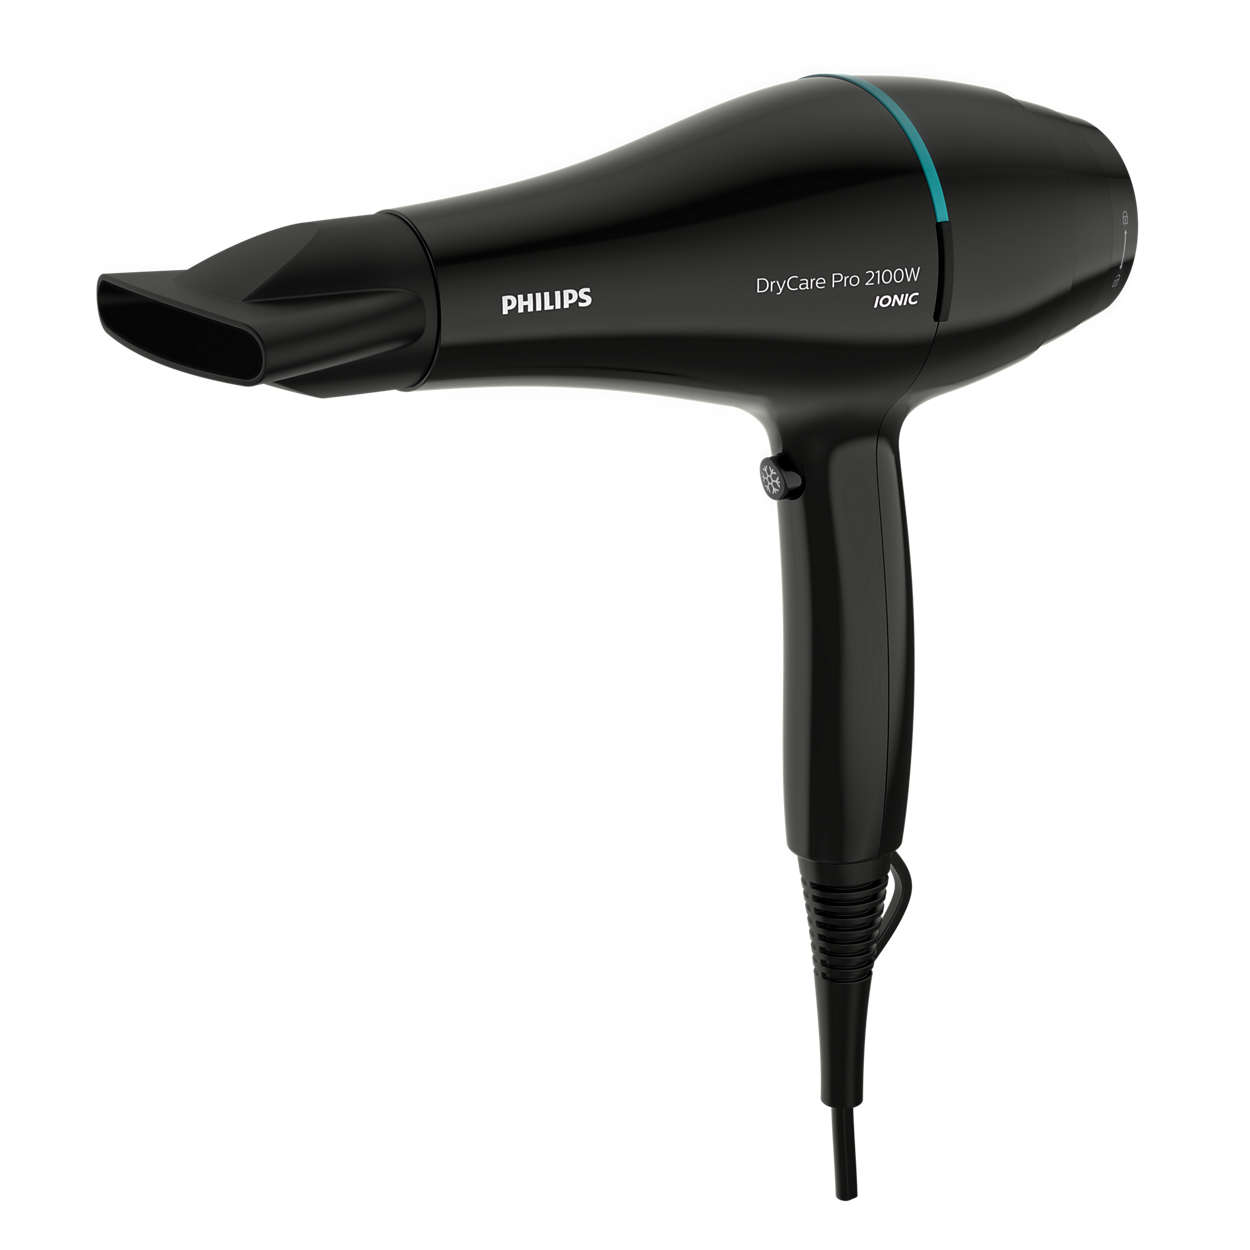 Fast and powerful drying for professional results